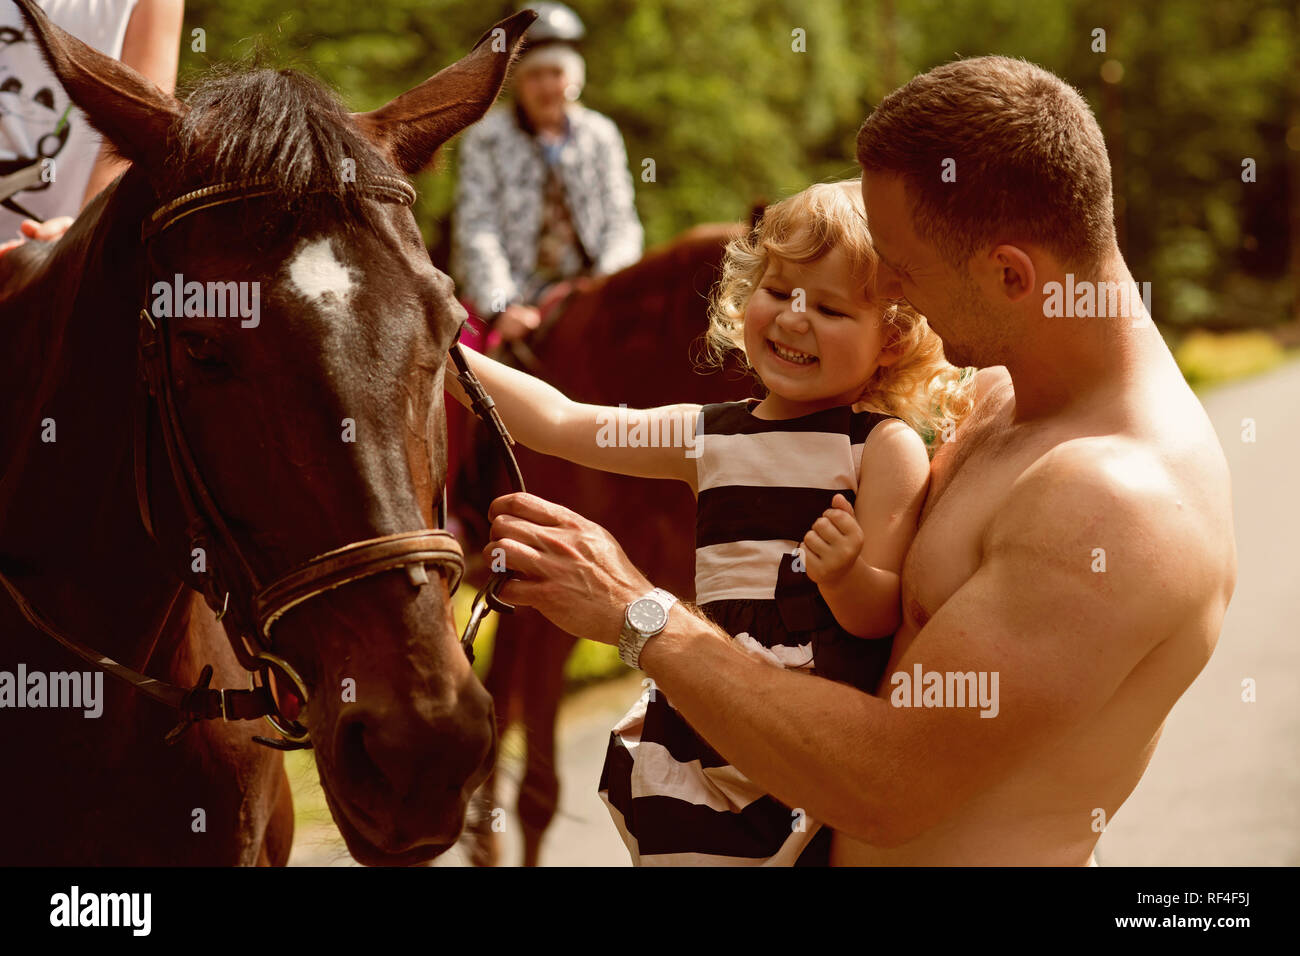 Equine therapy, recreation concept - Stock Image